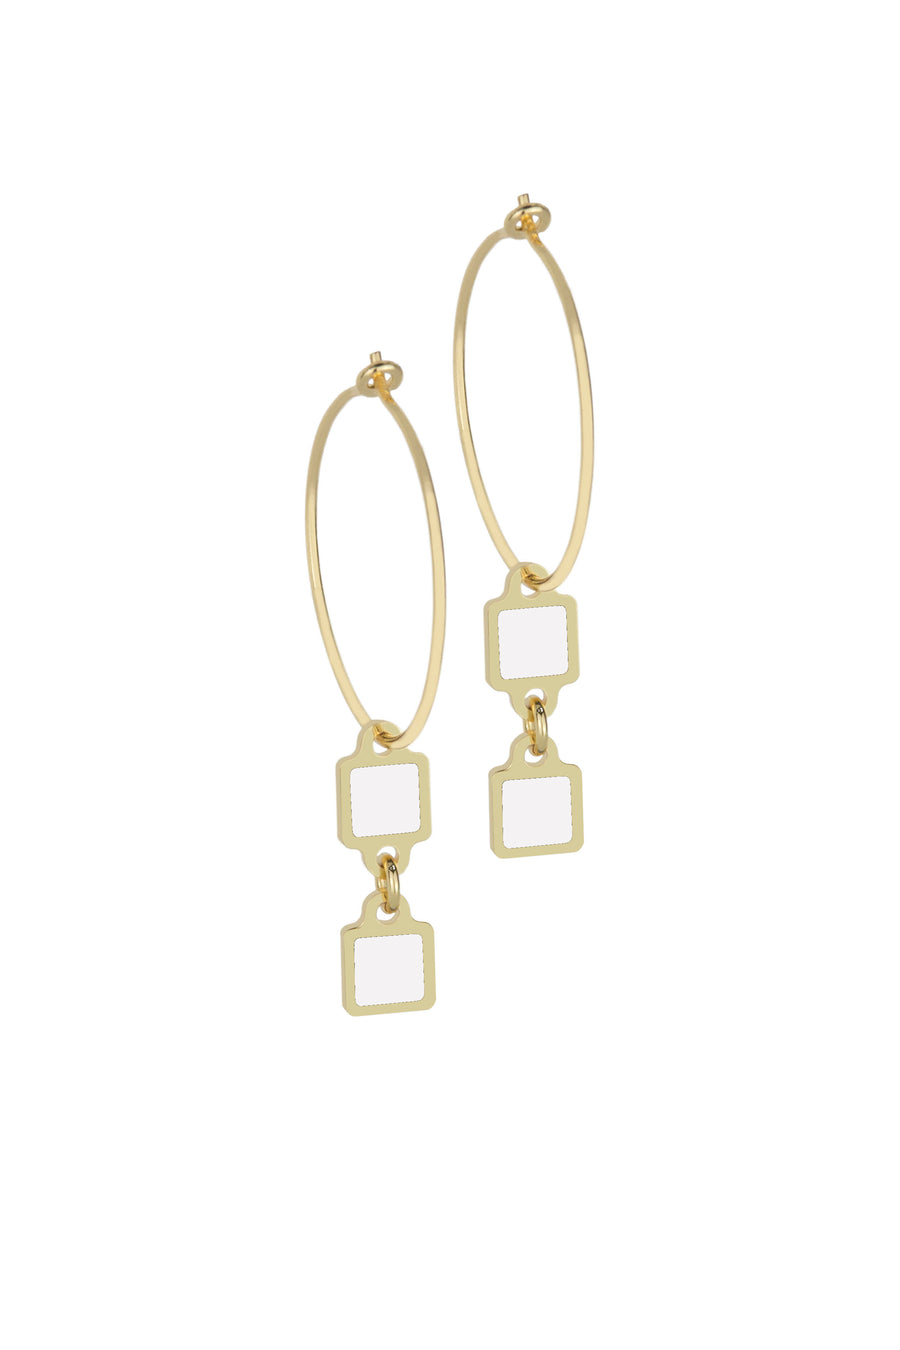 Francesca Bianchi - Square Pendant Hoop Earrings - White